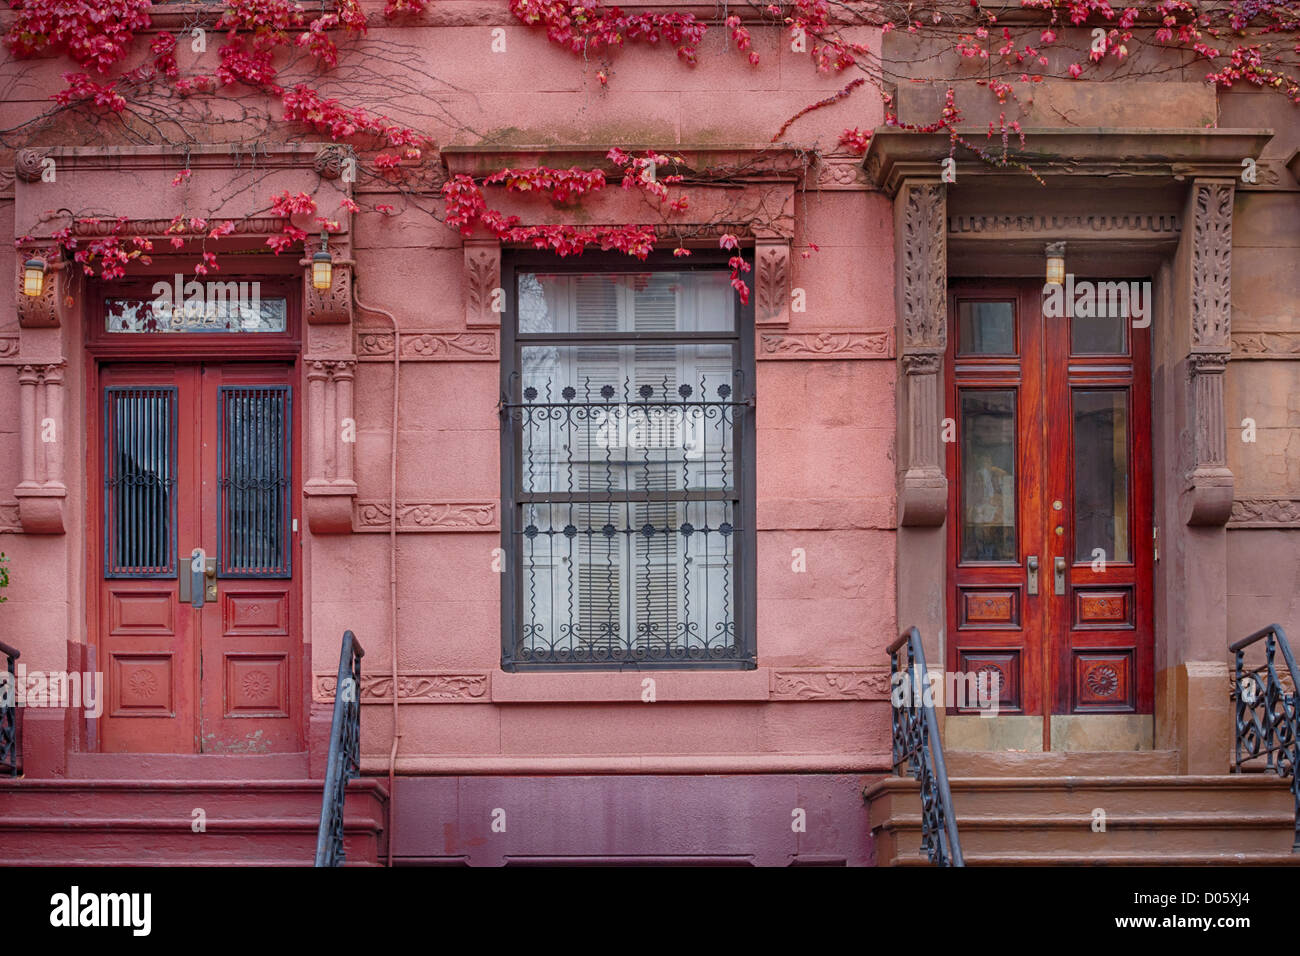 En rangée portes avec lierre rose, Harlem, New York, USA Photo Stock